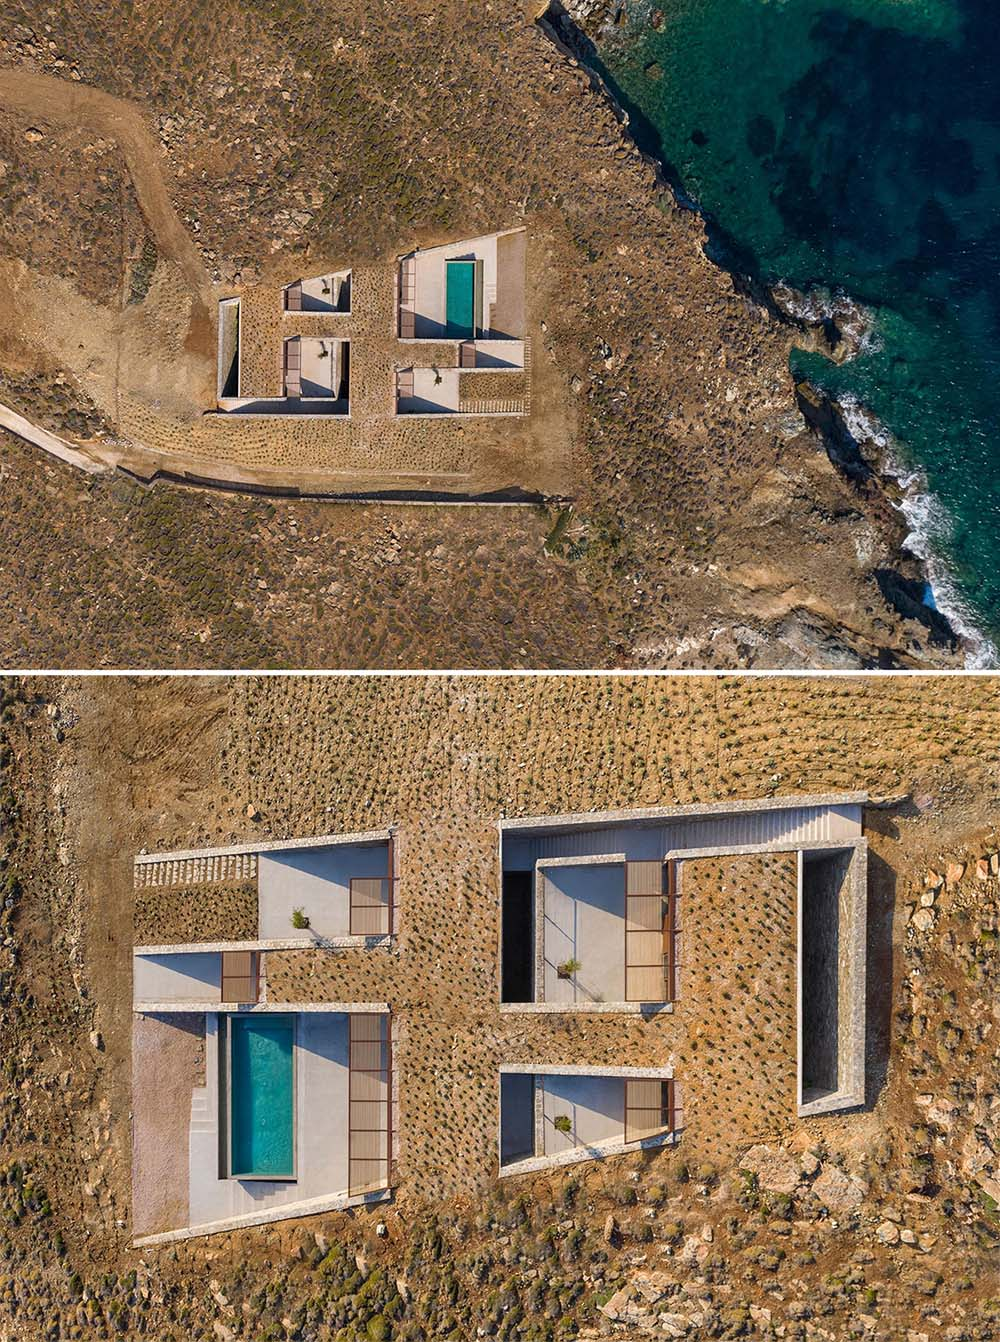 A modern multi-level home with a swimming pool, that's been built into a hillside.